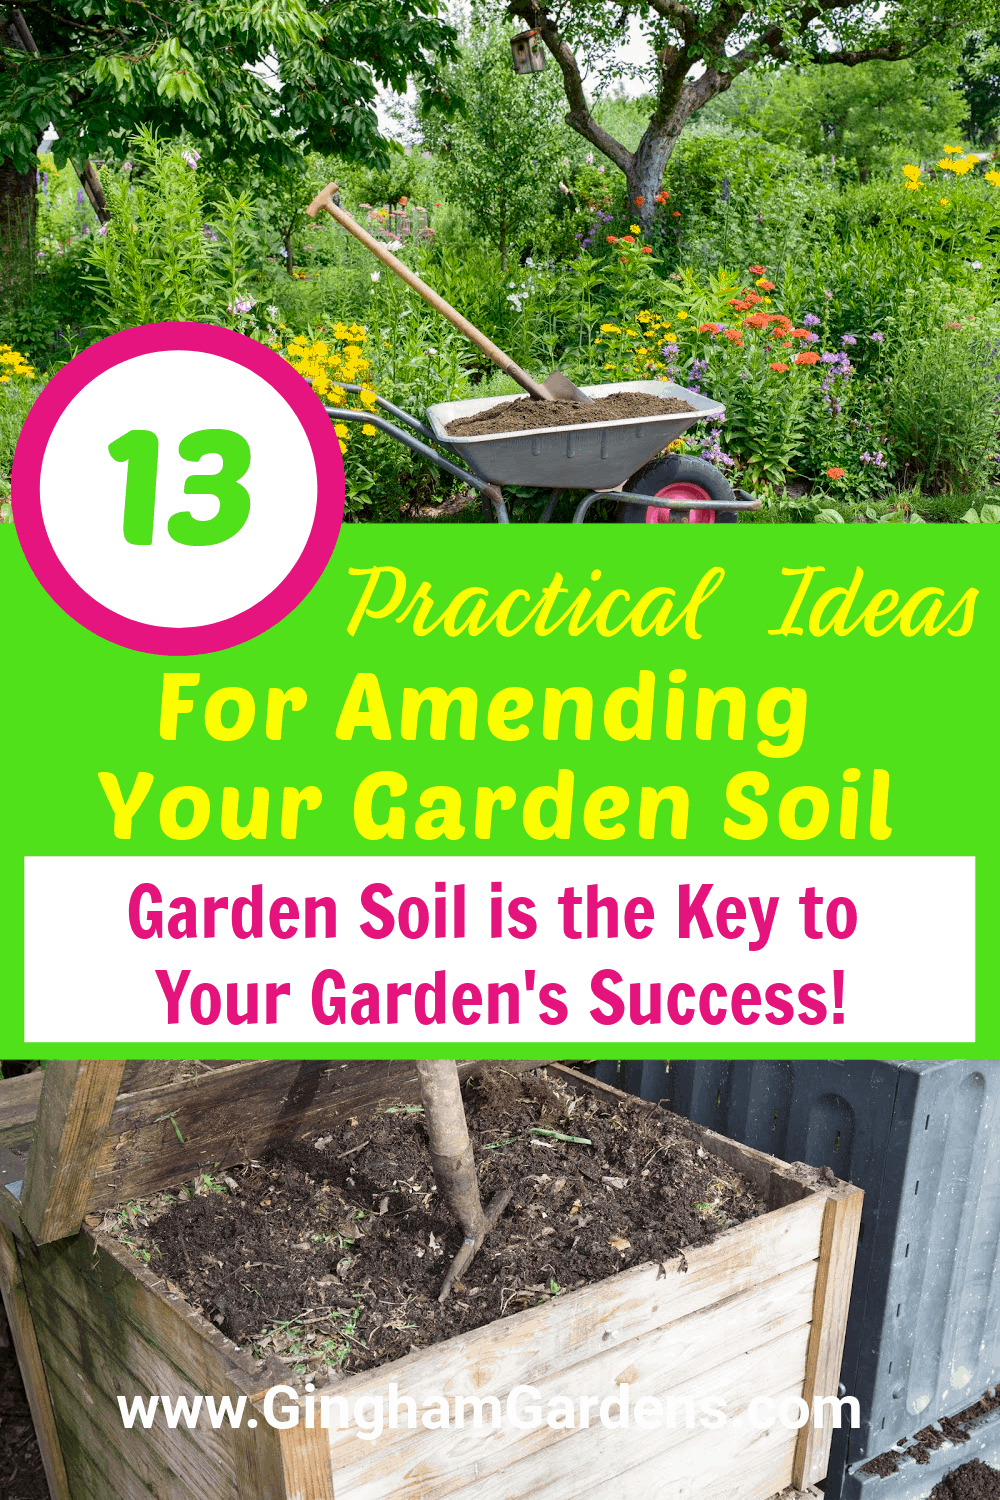 Images of a garden and compost bin with text overlay 13 practical ideas for Amending Your Garden Soil